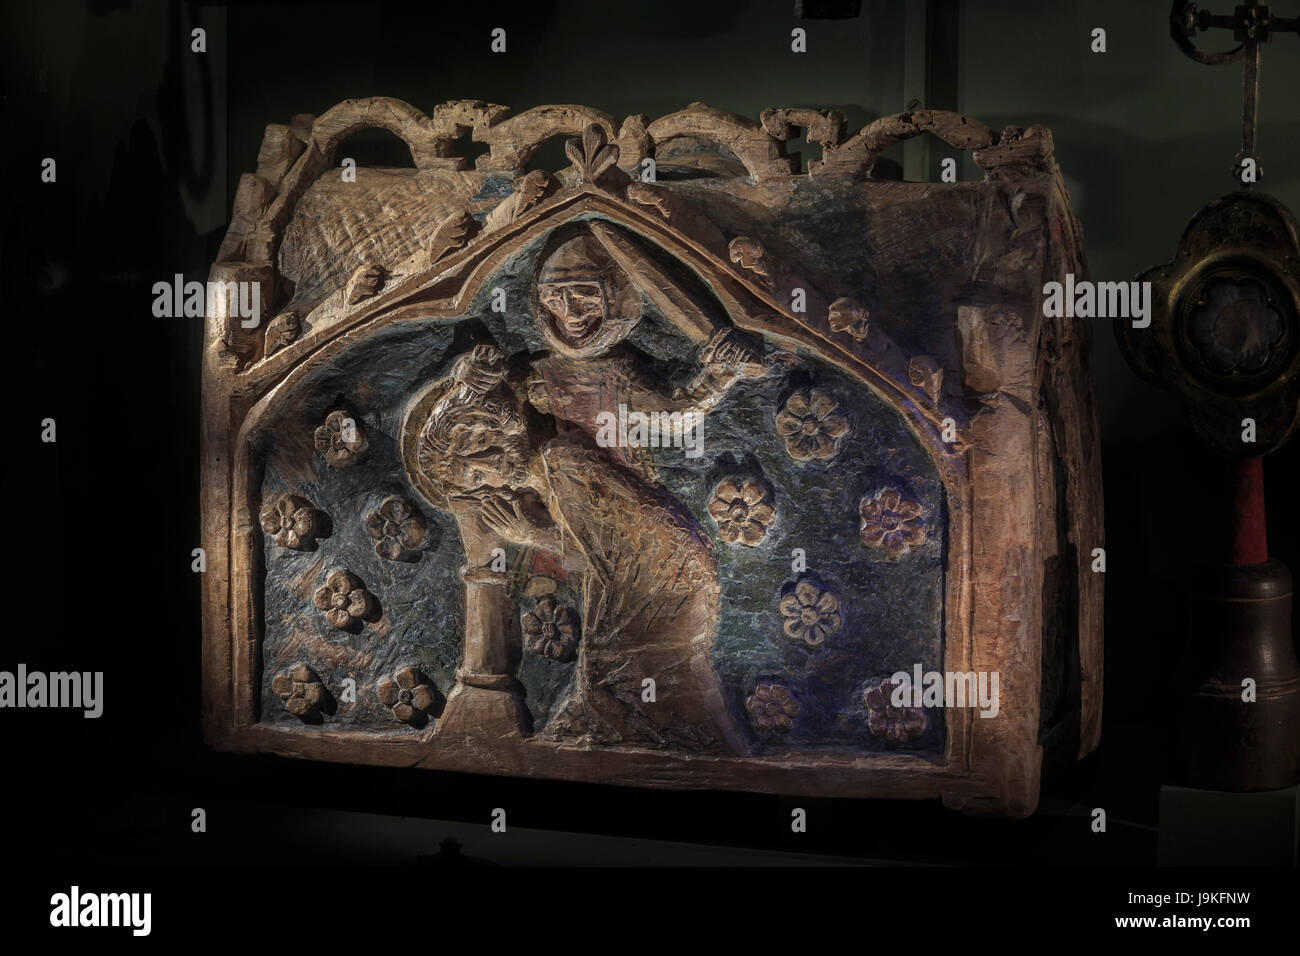 France, Indre, Saint Marcel, the church, the treasure, wooden reliquary of the martyrdom of Saint Marcel - Stock Image